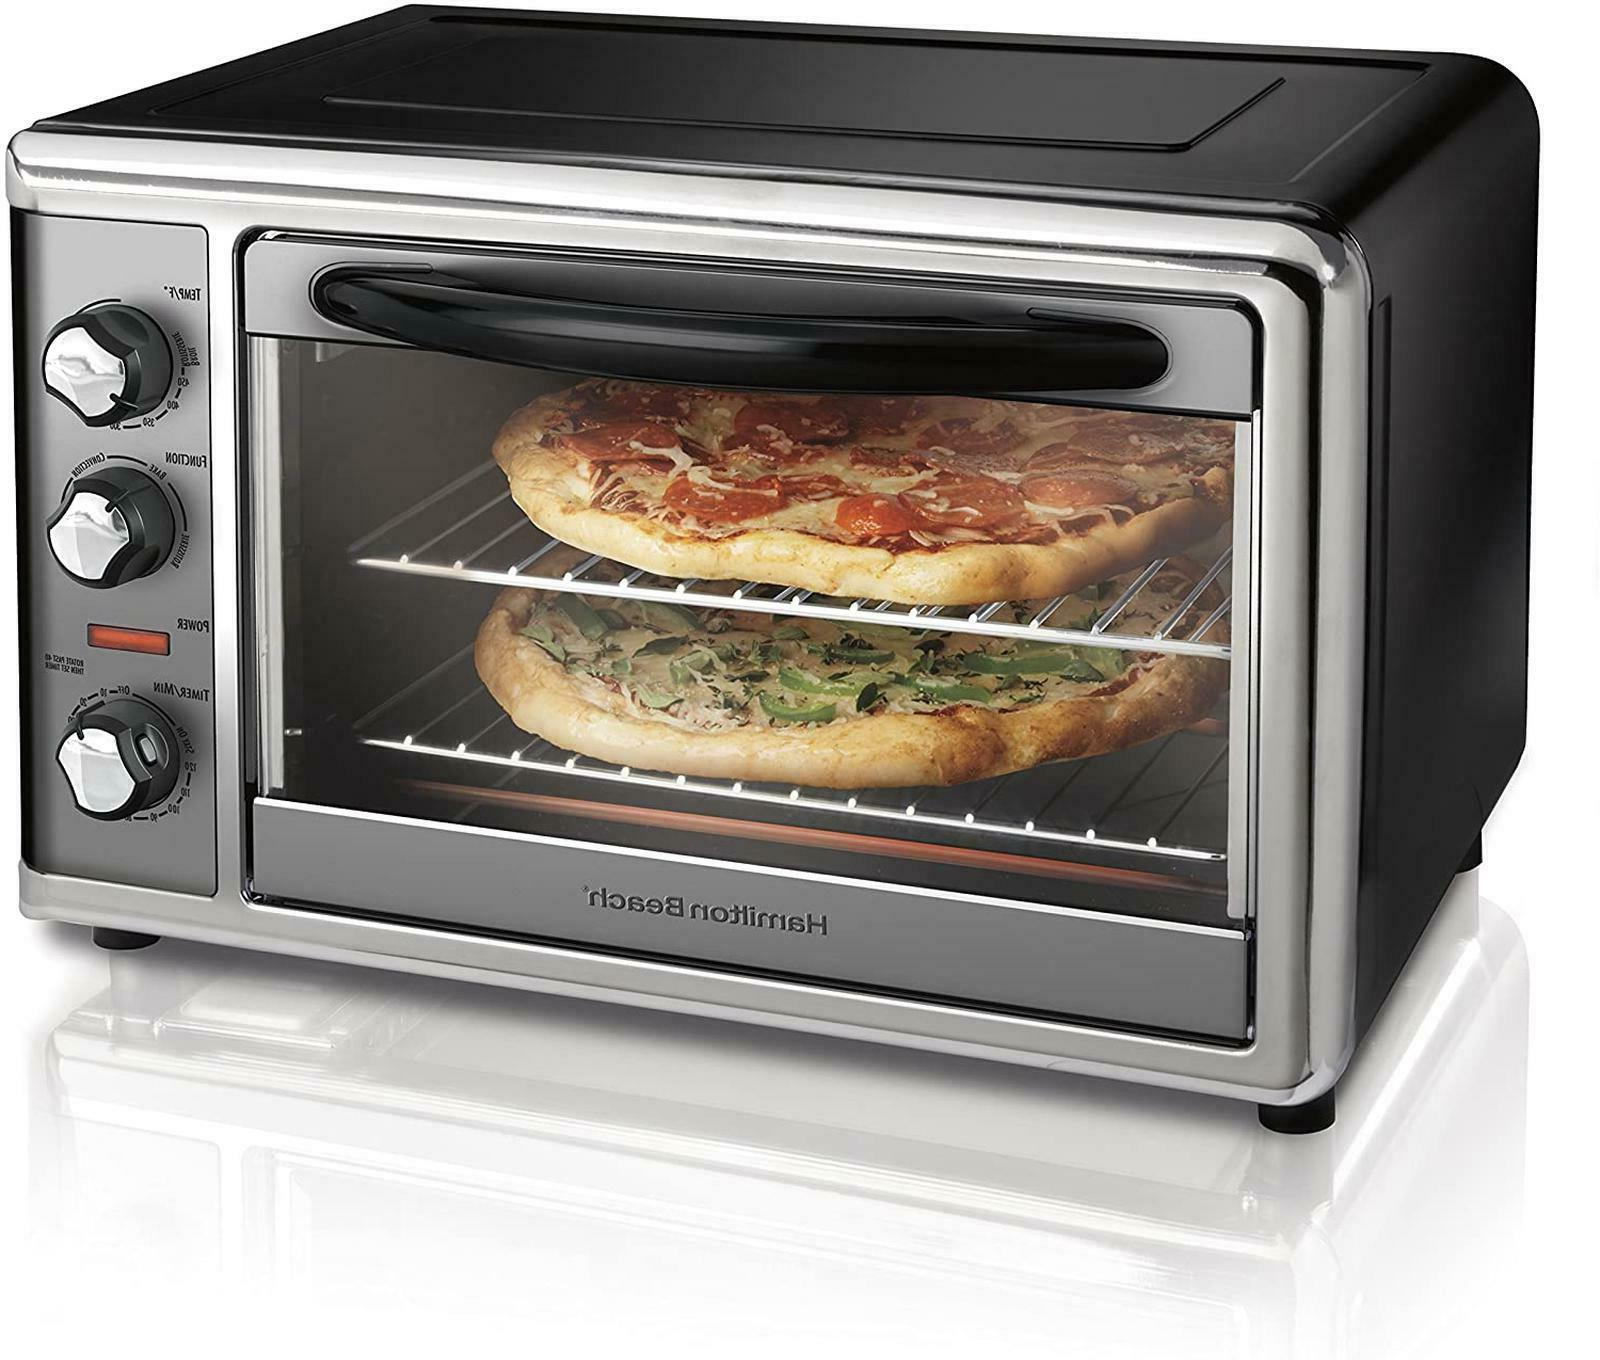 Rotisserie Convection Toaster Oven Countertop  Large Home Ki